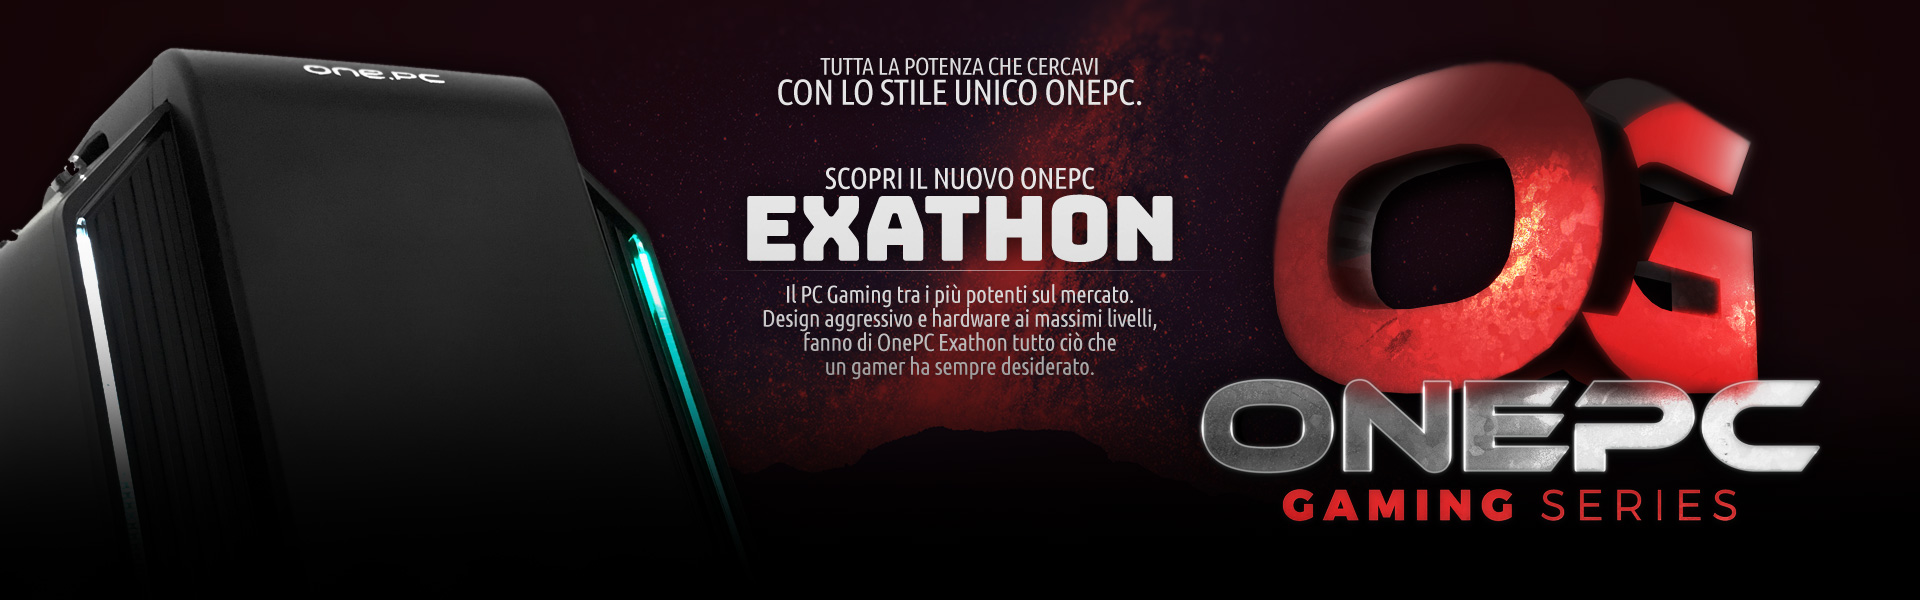 slide-onepc-gaming